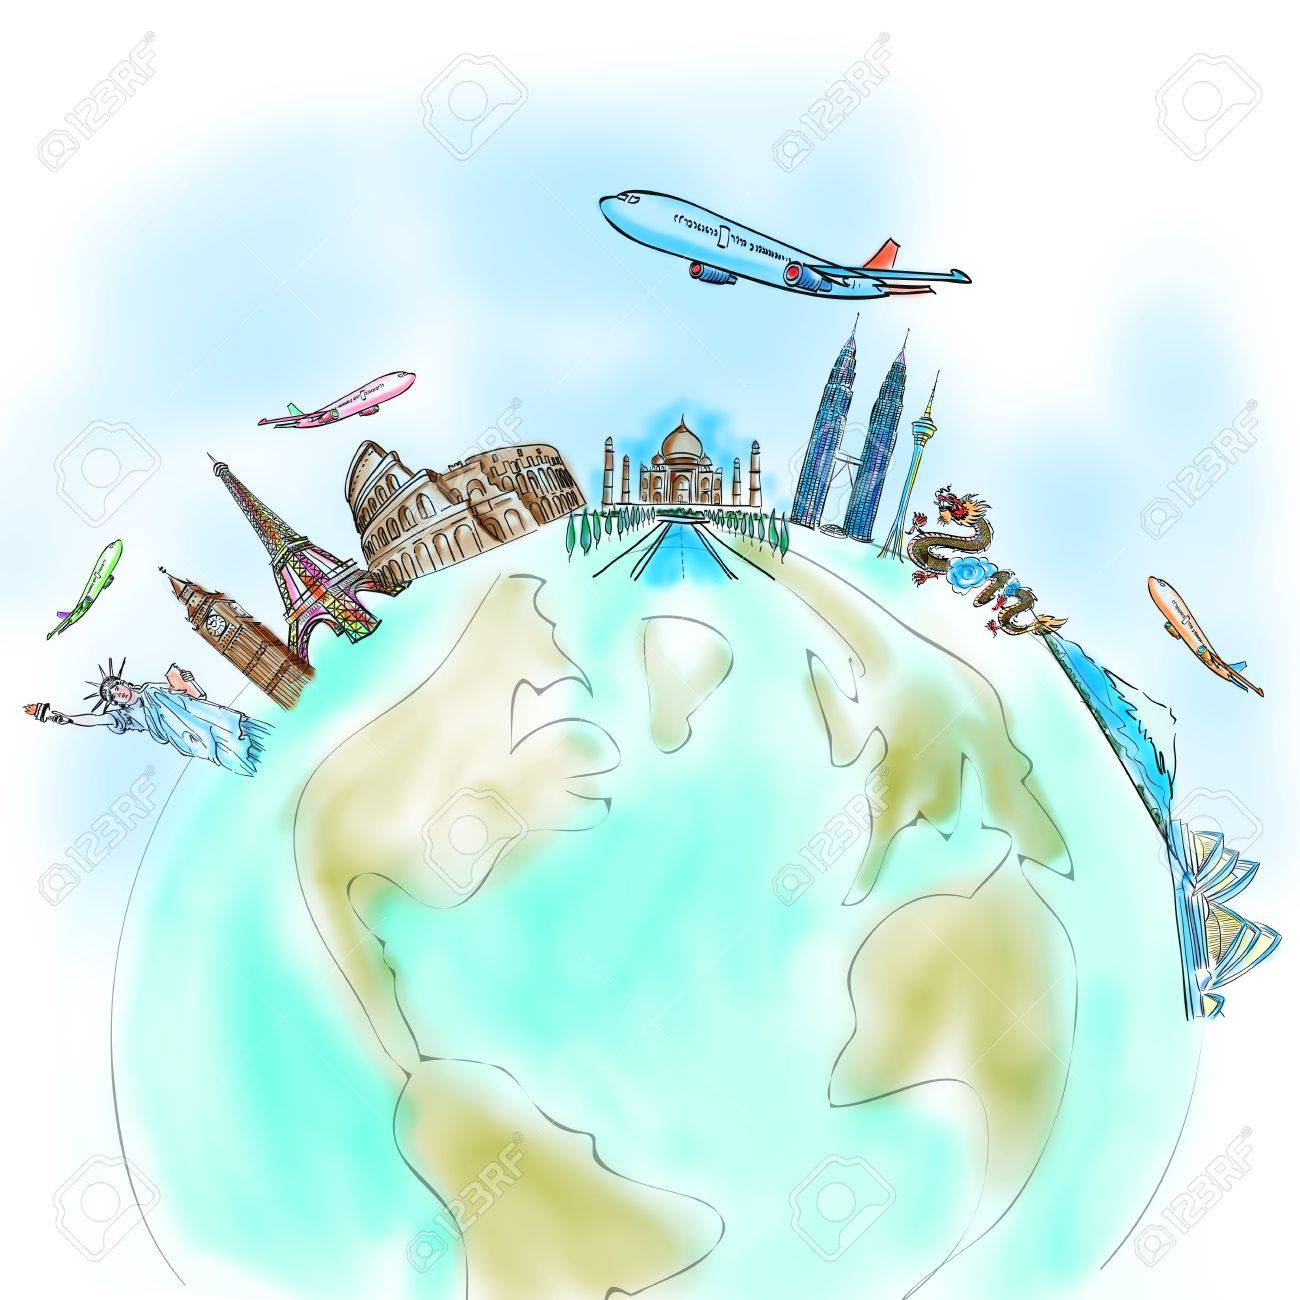 drawing the dream travel around the world in a whiteboard Stock Photo - 12397103